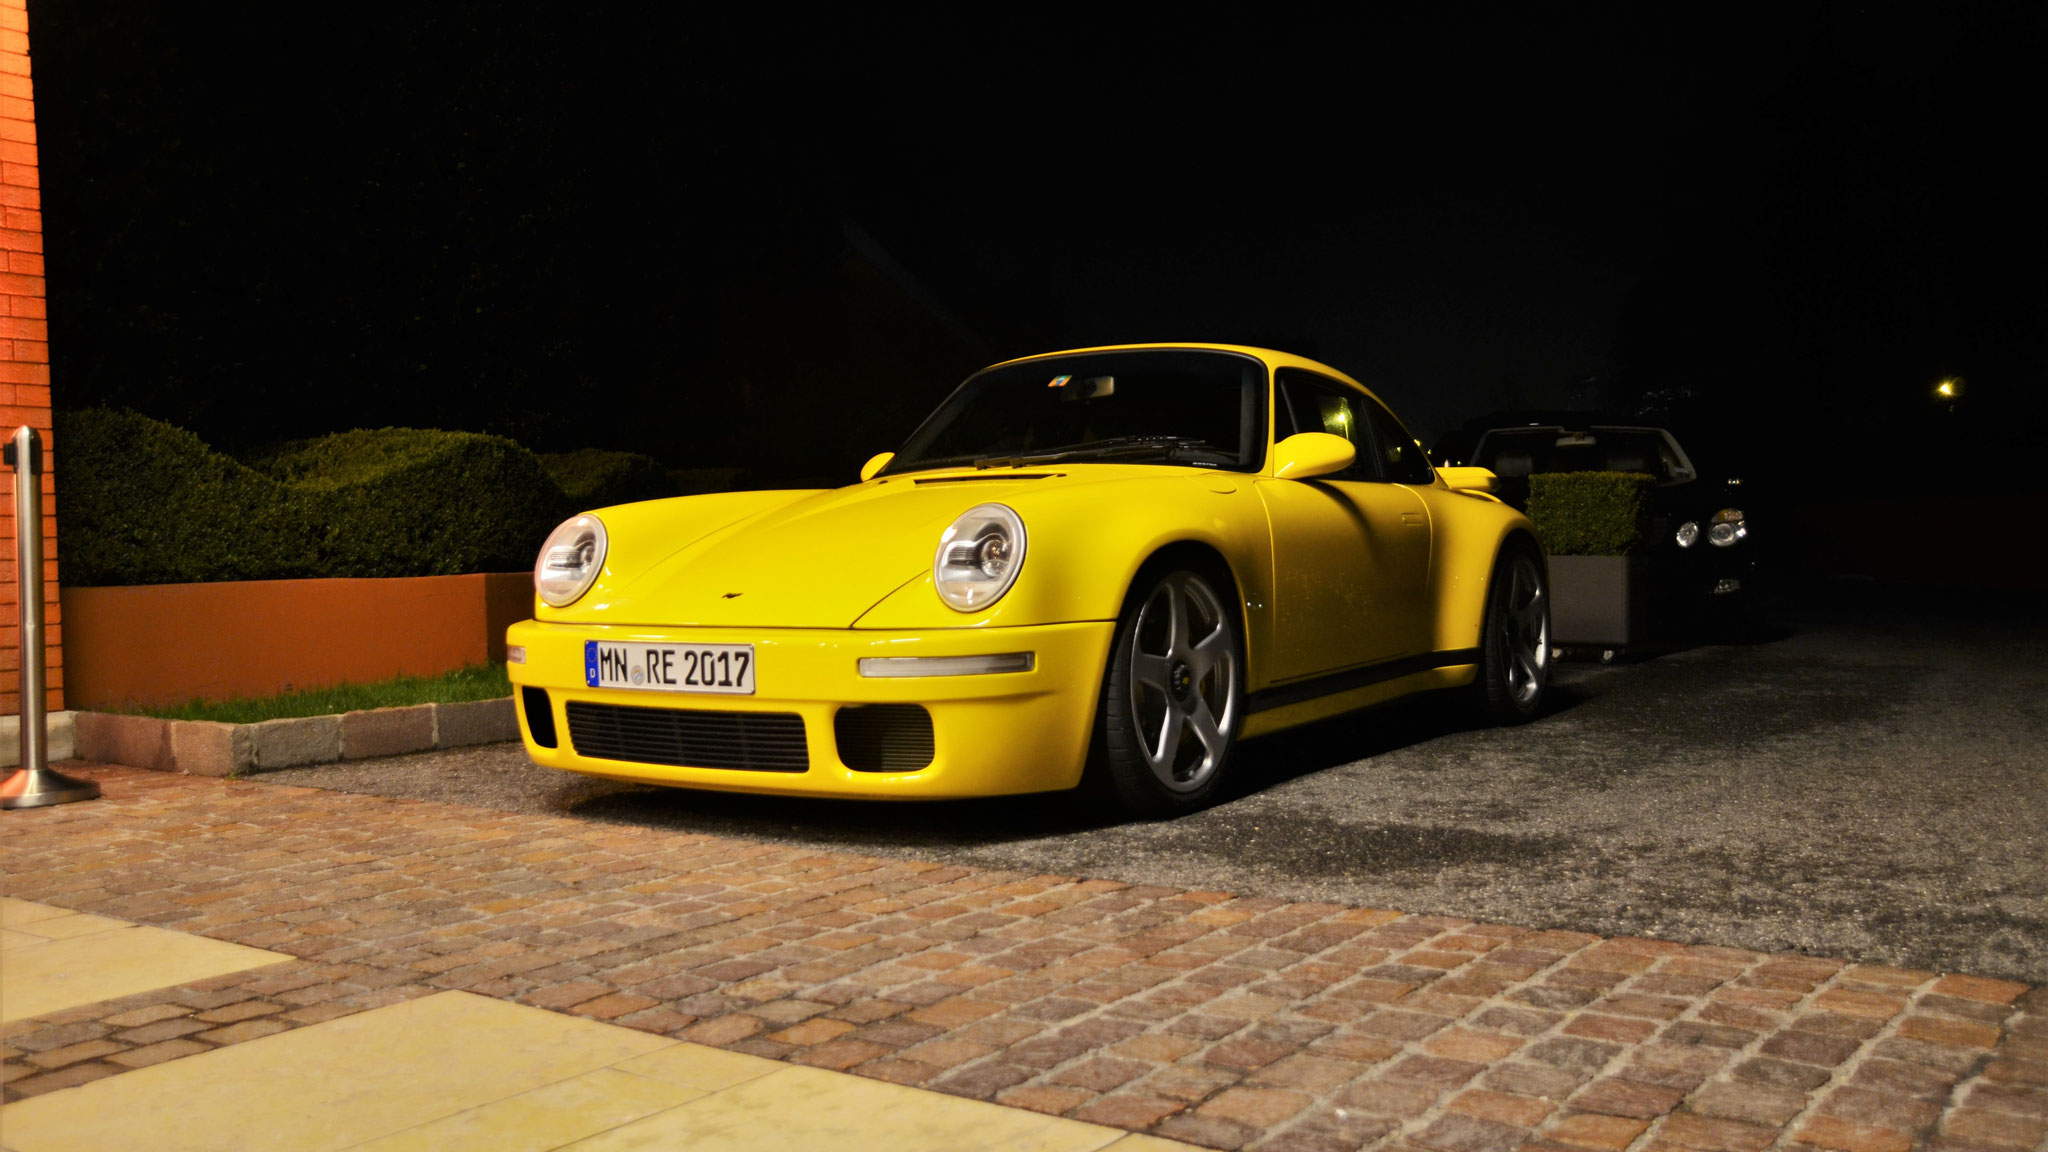 RUF 964 CTR Yellow Bird - MN-RE-2017